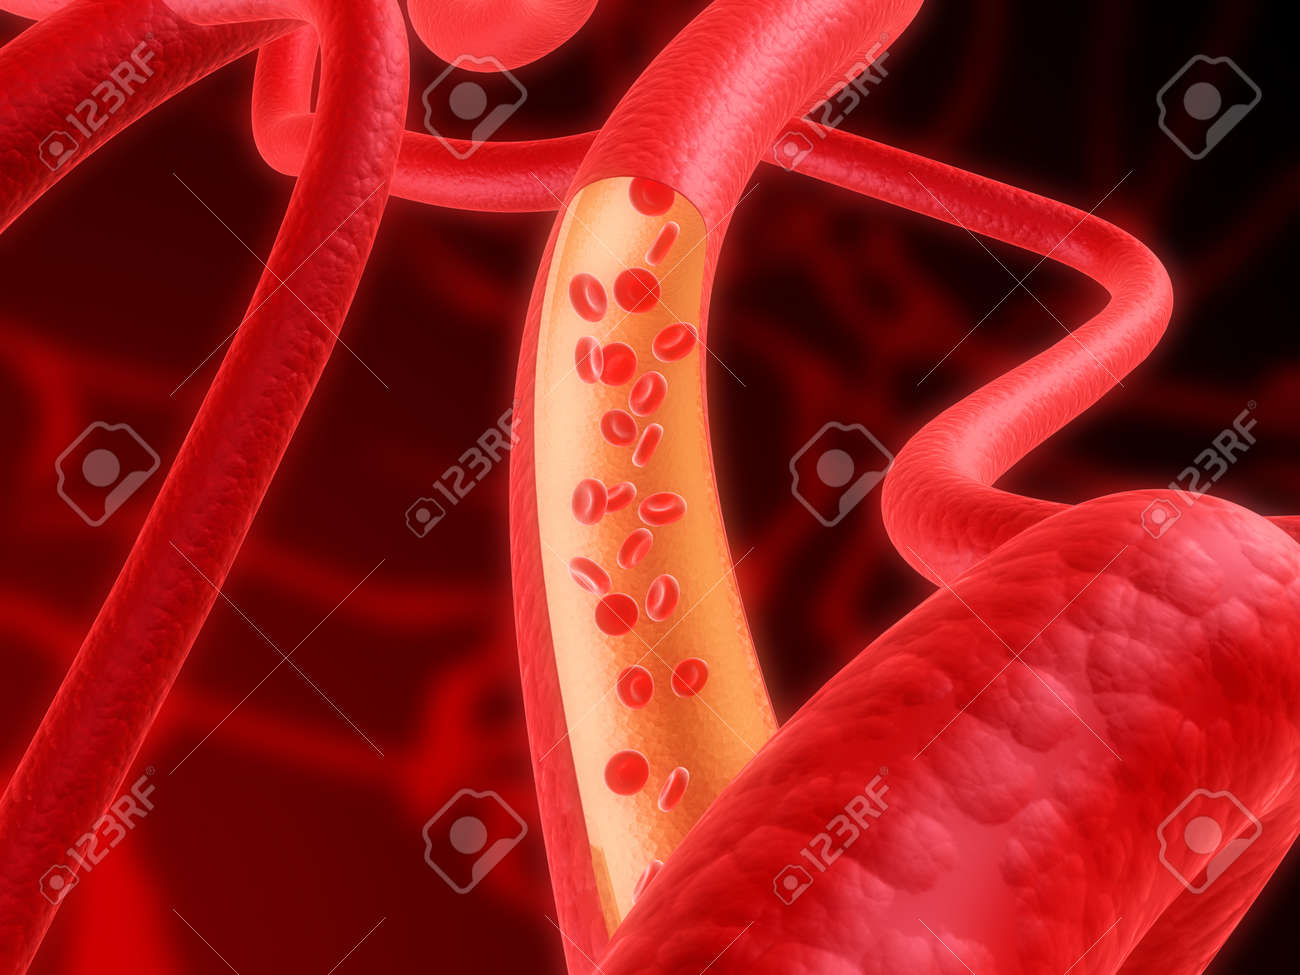 artery Stock Photo - 1424550